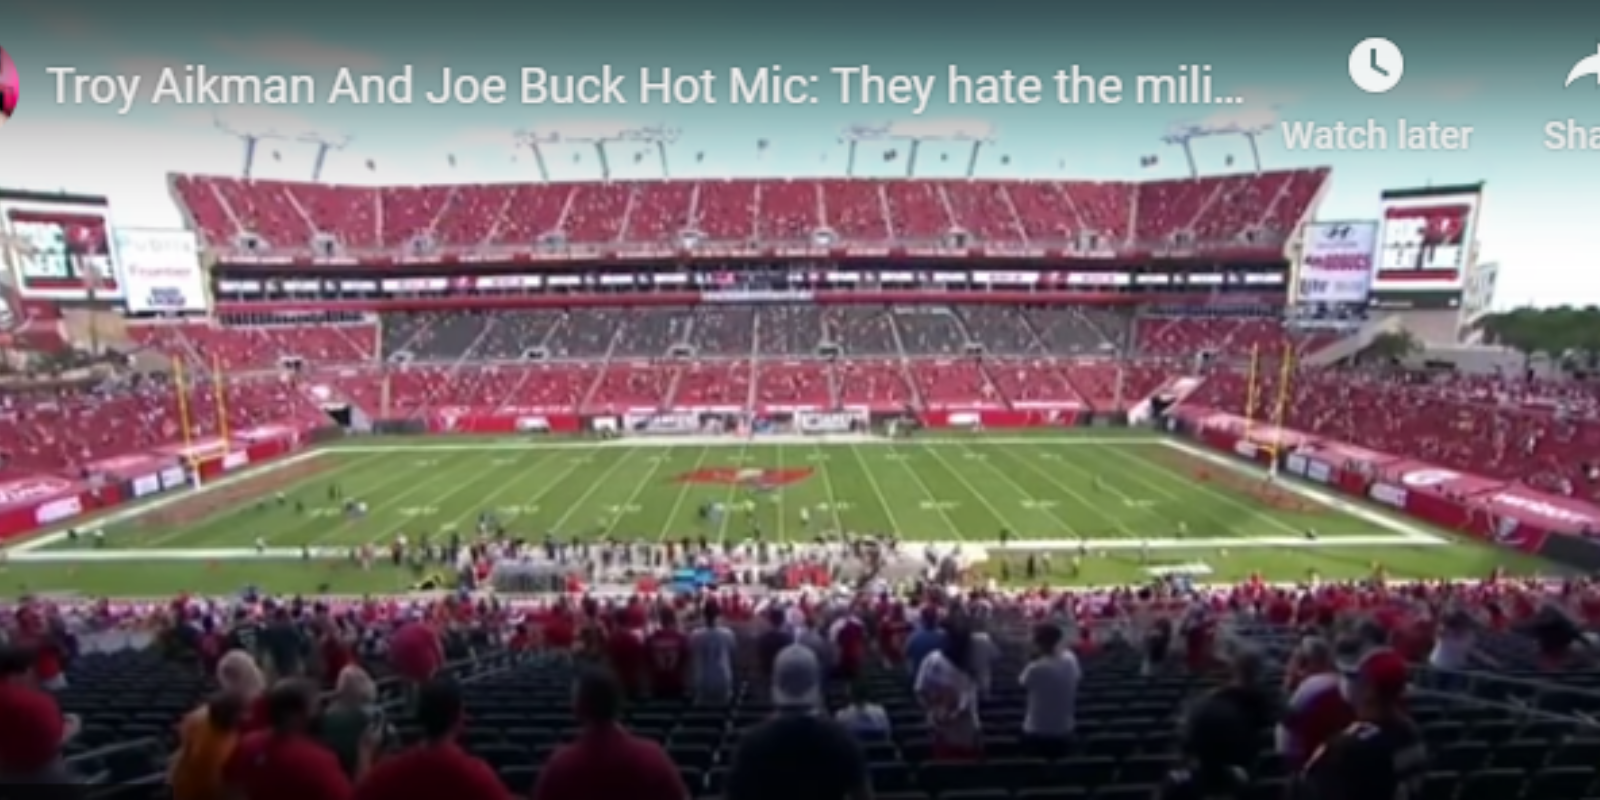 NFL broadcasters busted mocking military on hot mic